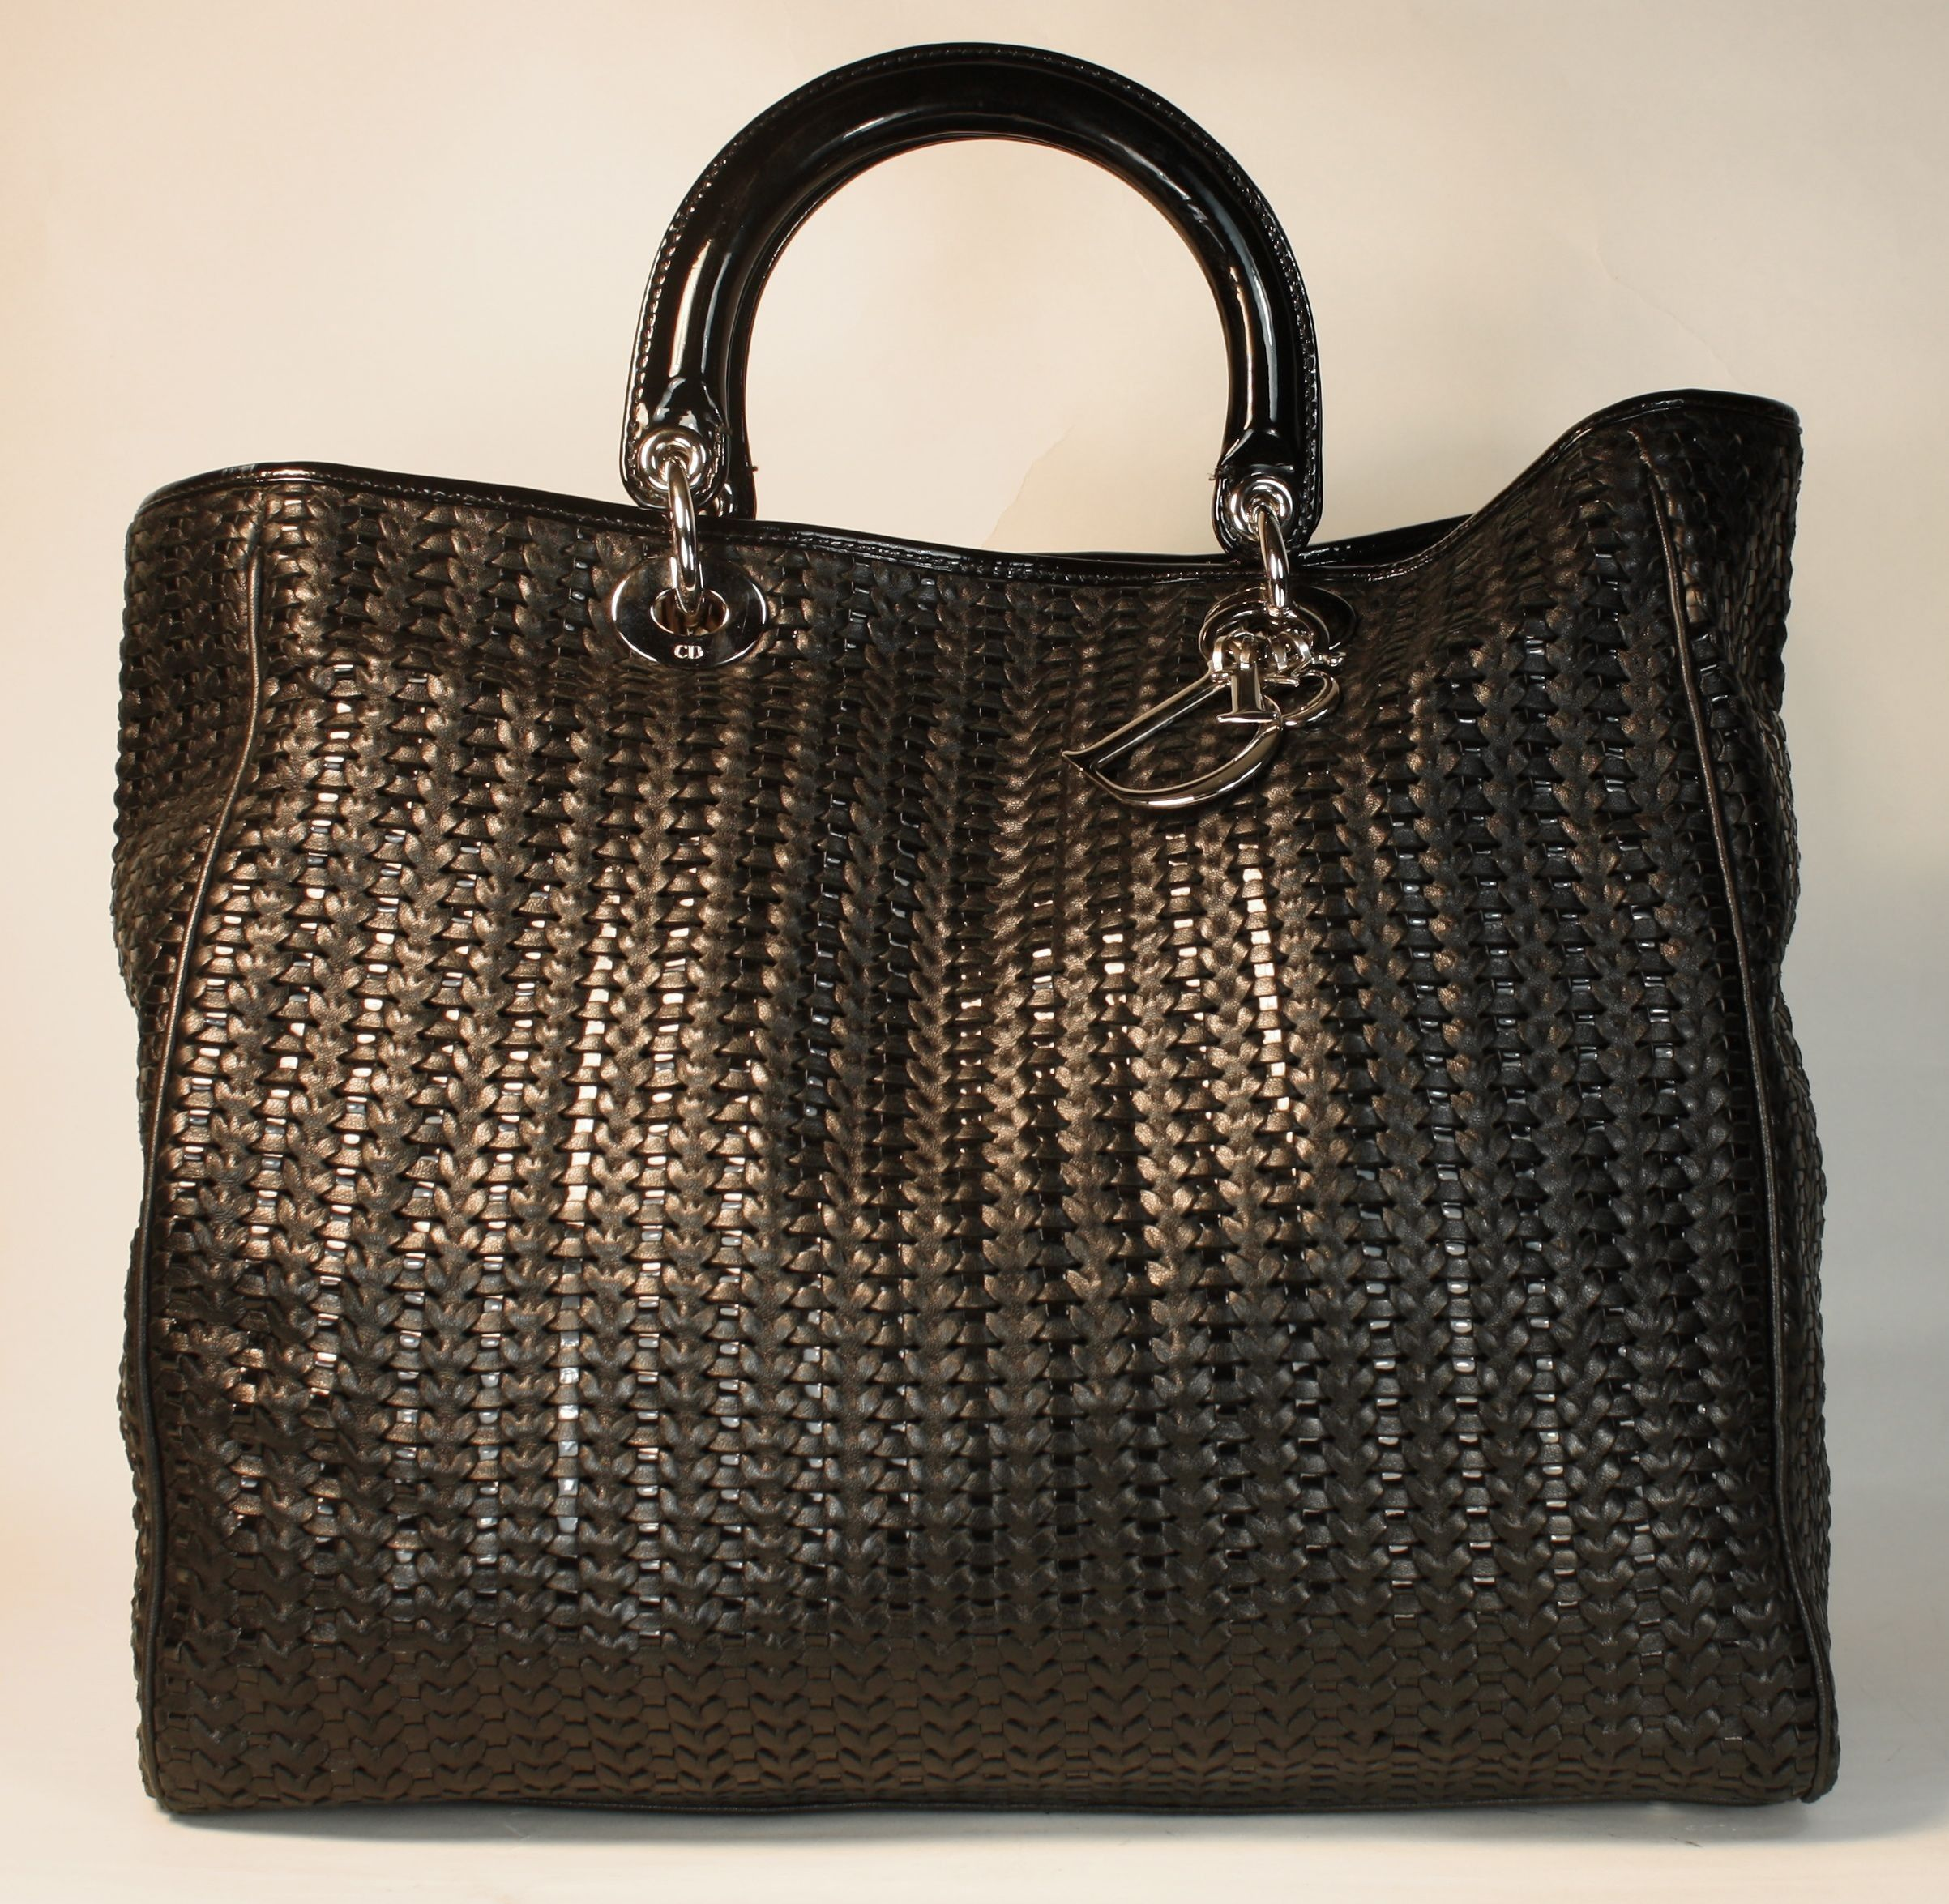 Christian Dior Tote Bag is done in woven black leather. The hardware is  done in silver. The black patent leather handle boast a 4 inch handle drop. 3f3afdcbe11e5